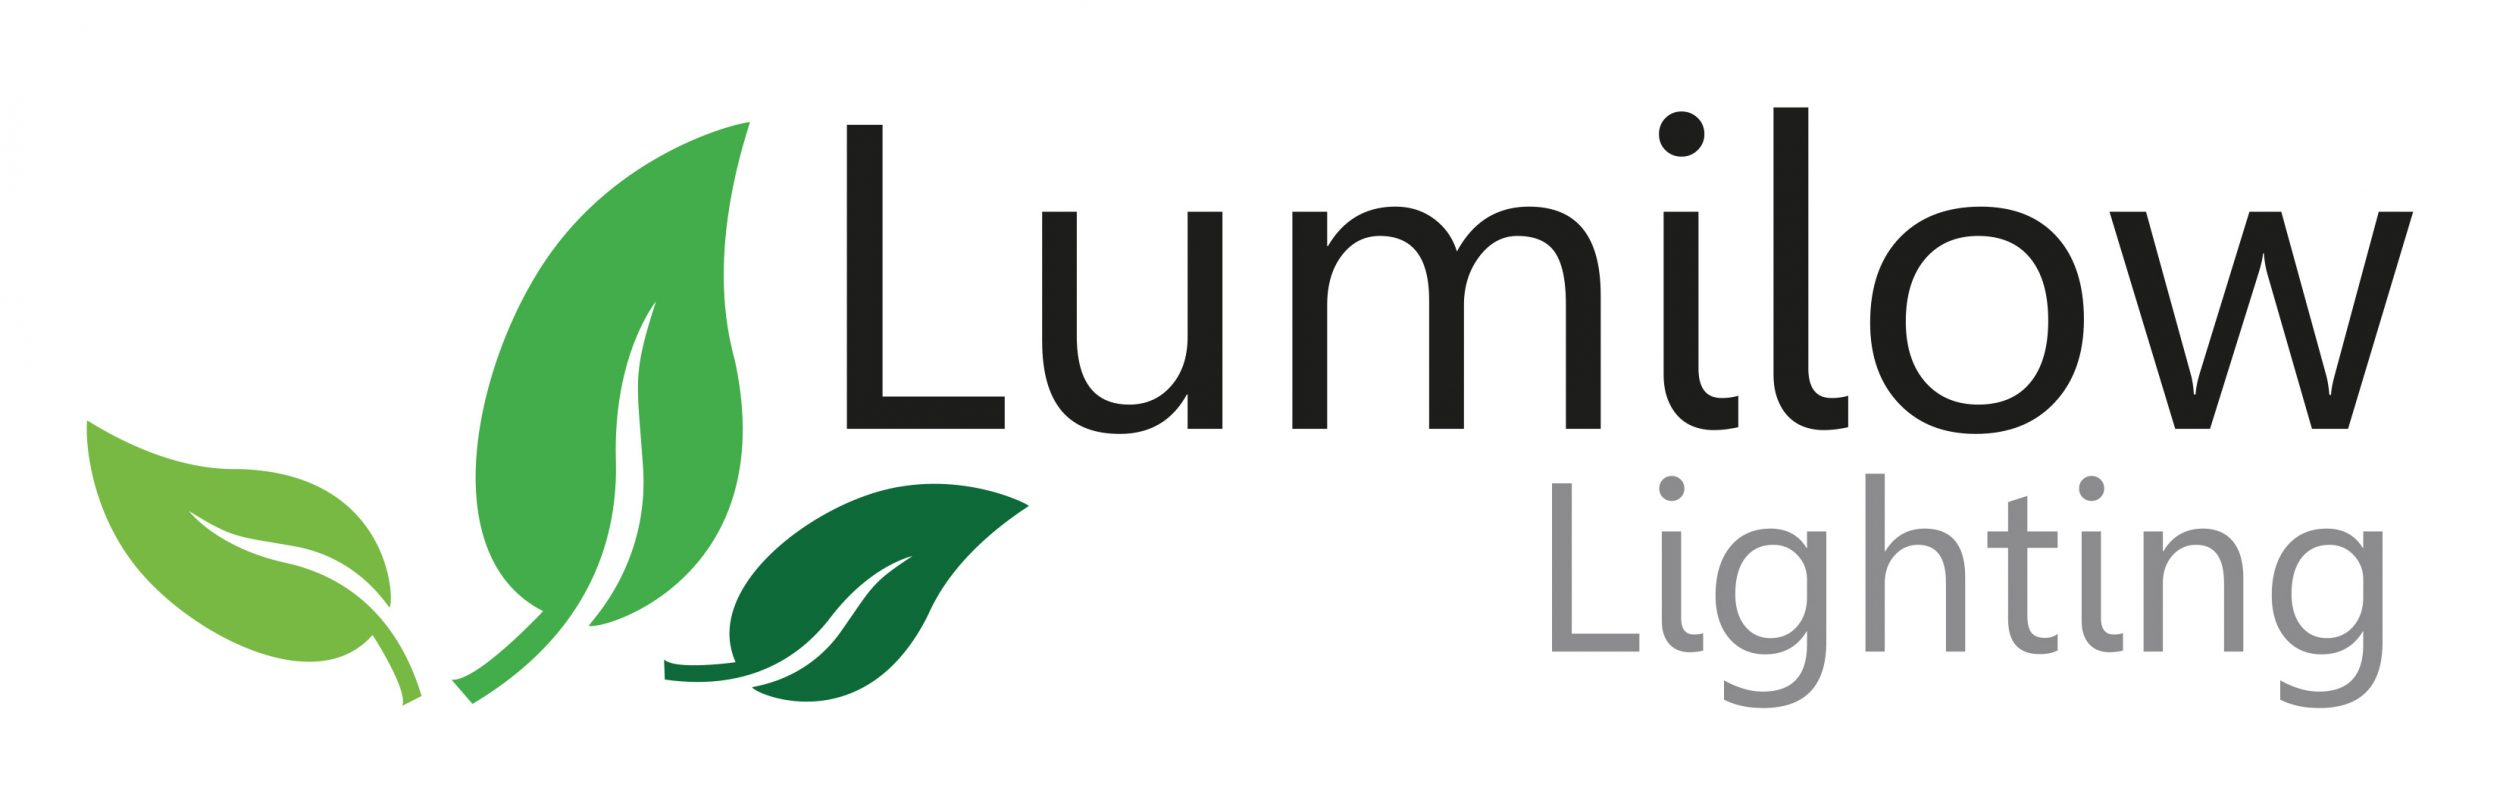 Lumilow Lighting Confirms Relationship With Relco As